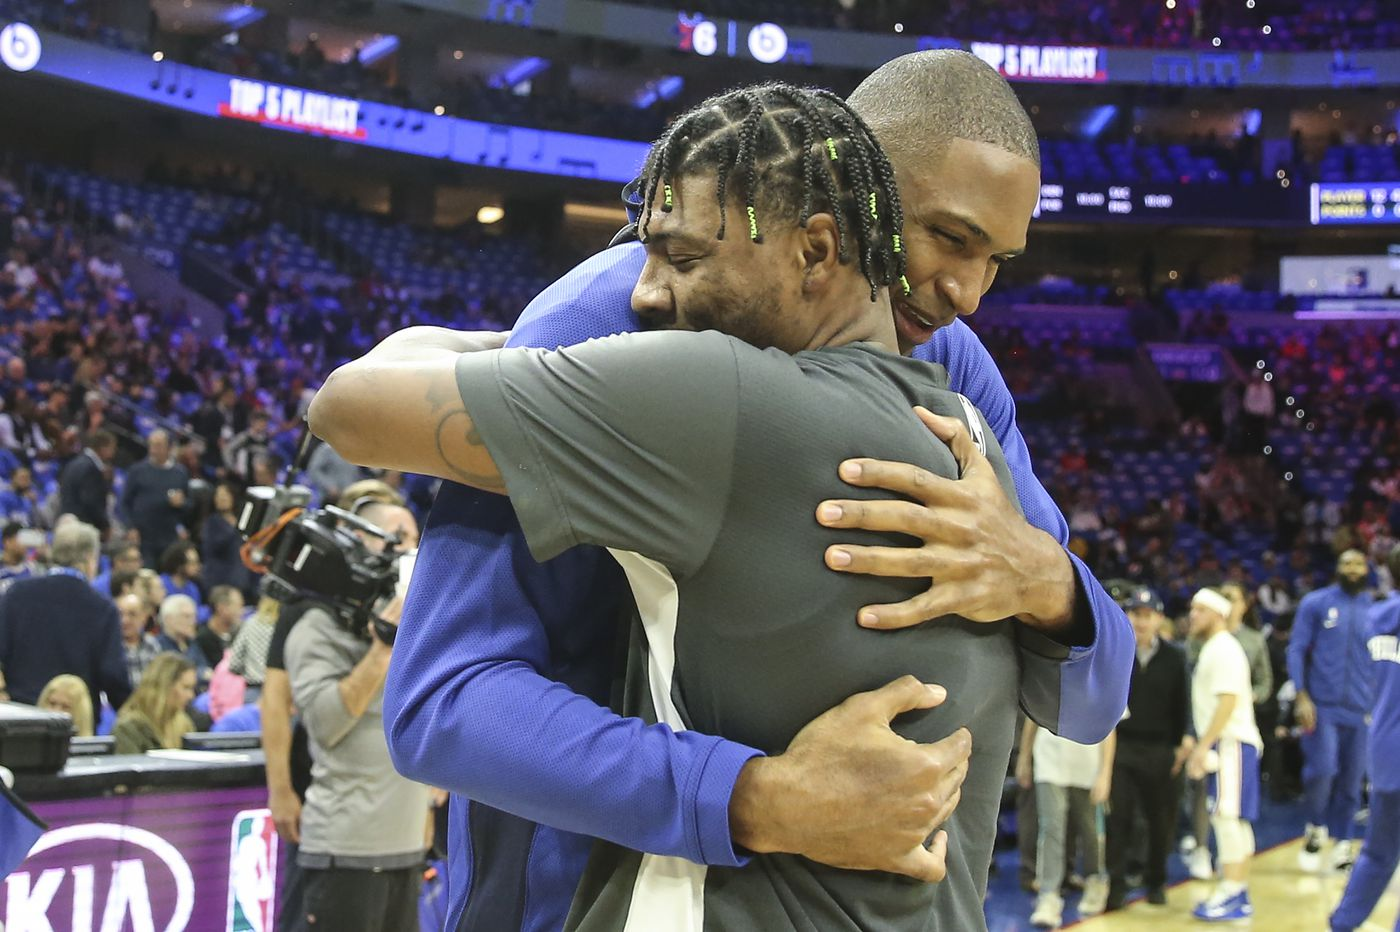 Boston Celtics know firsthand what former teammate Al Horford brings to Sixers